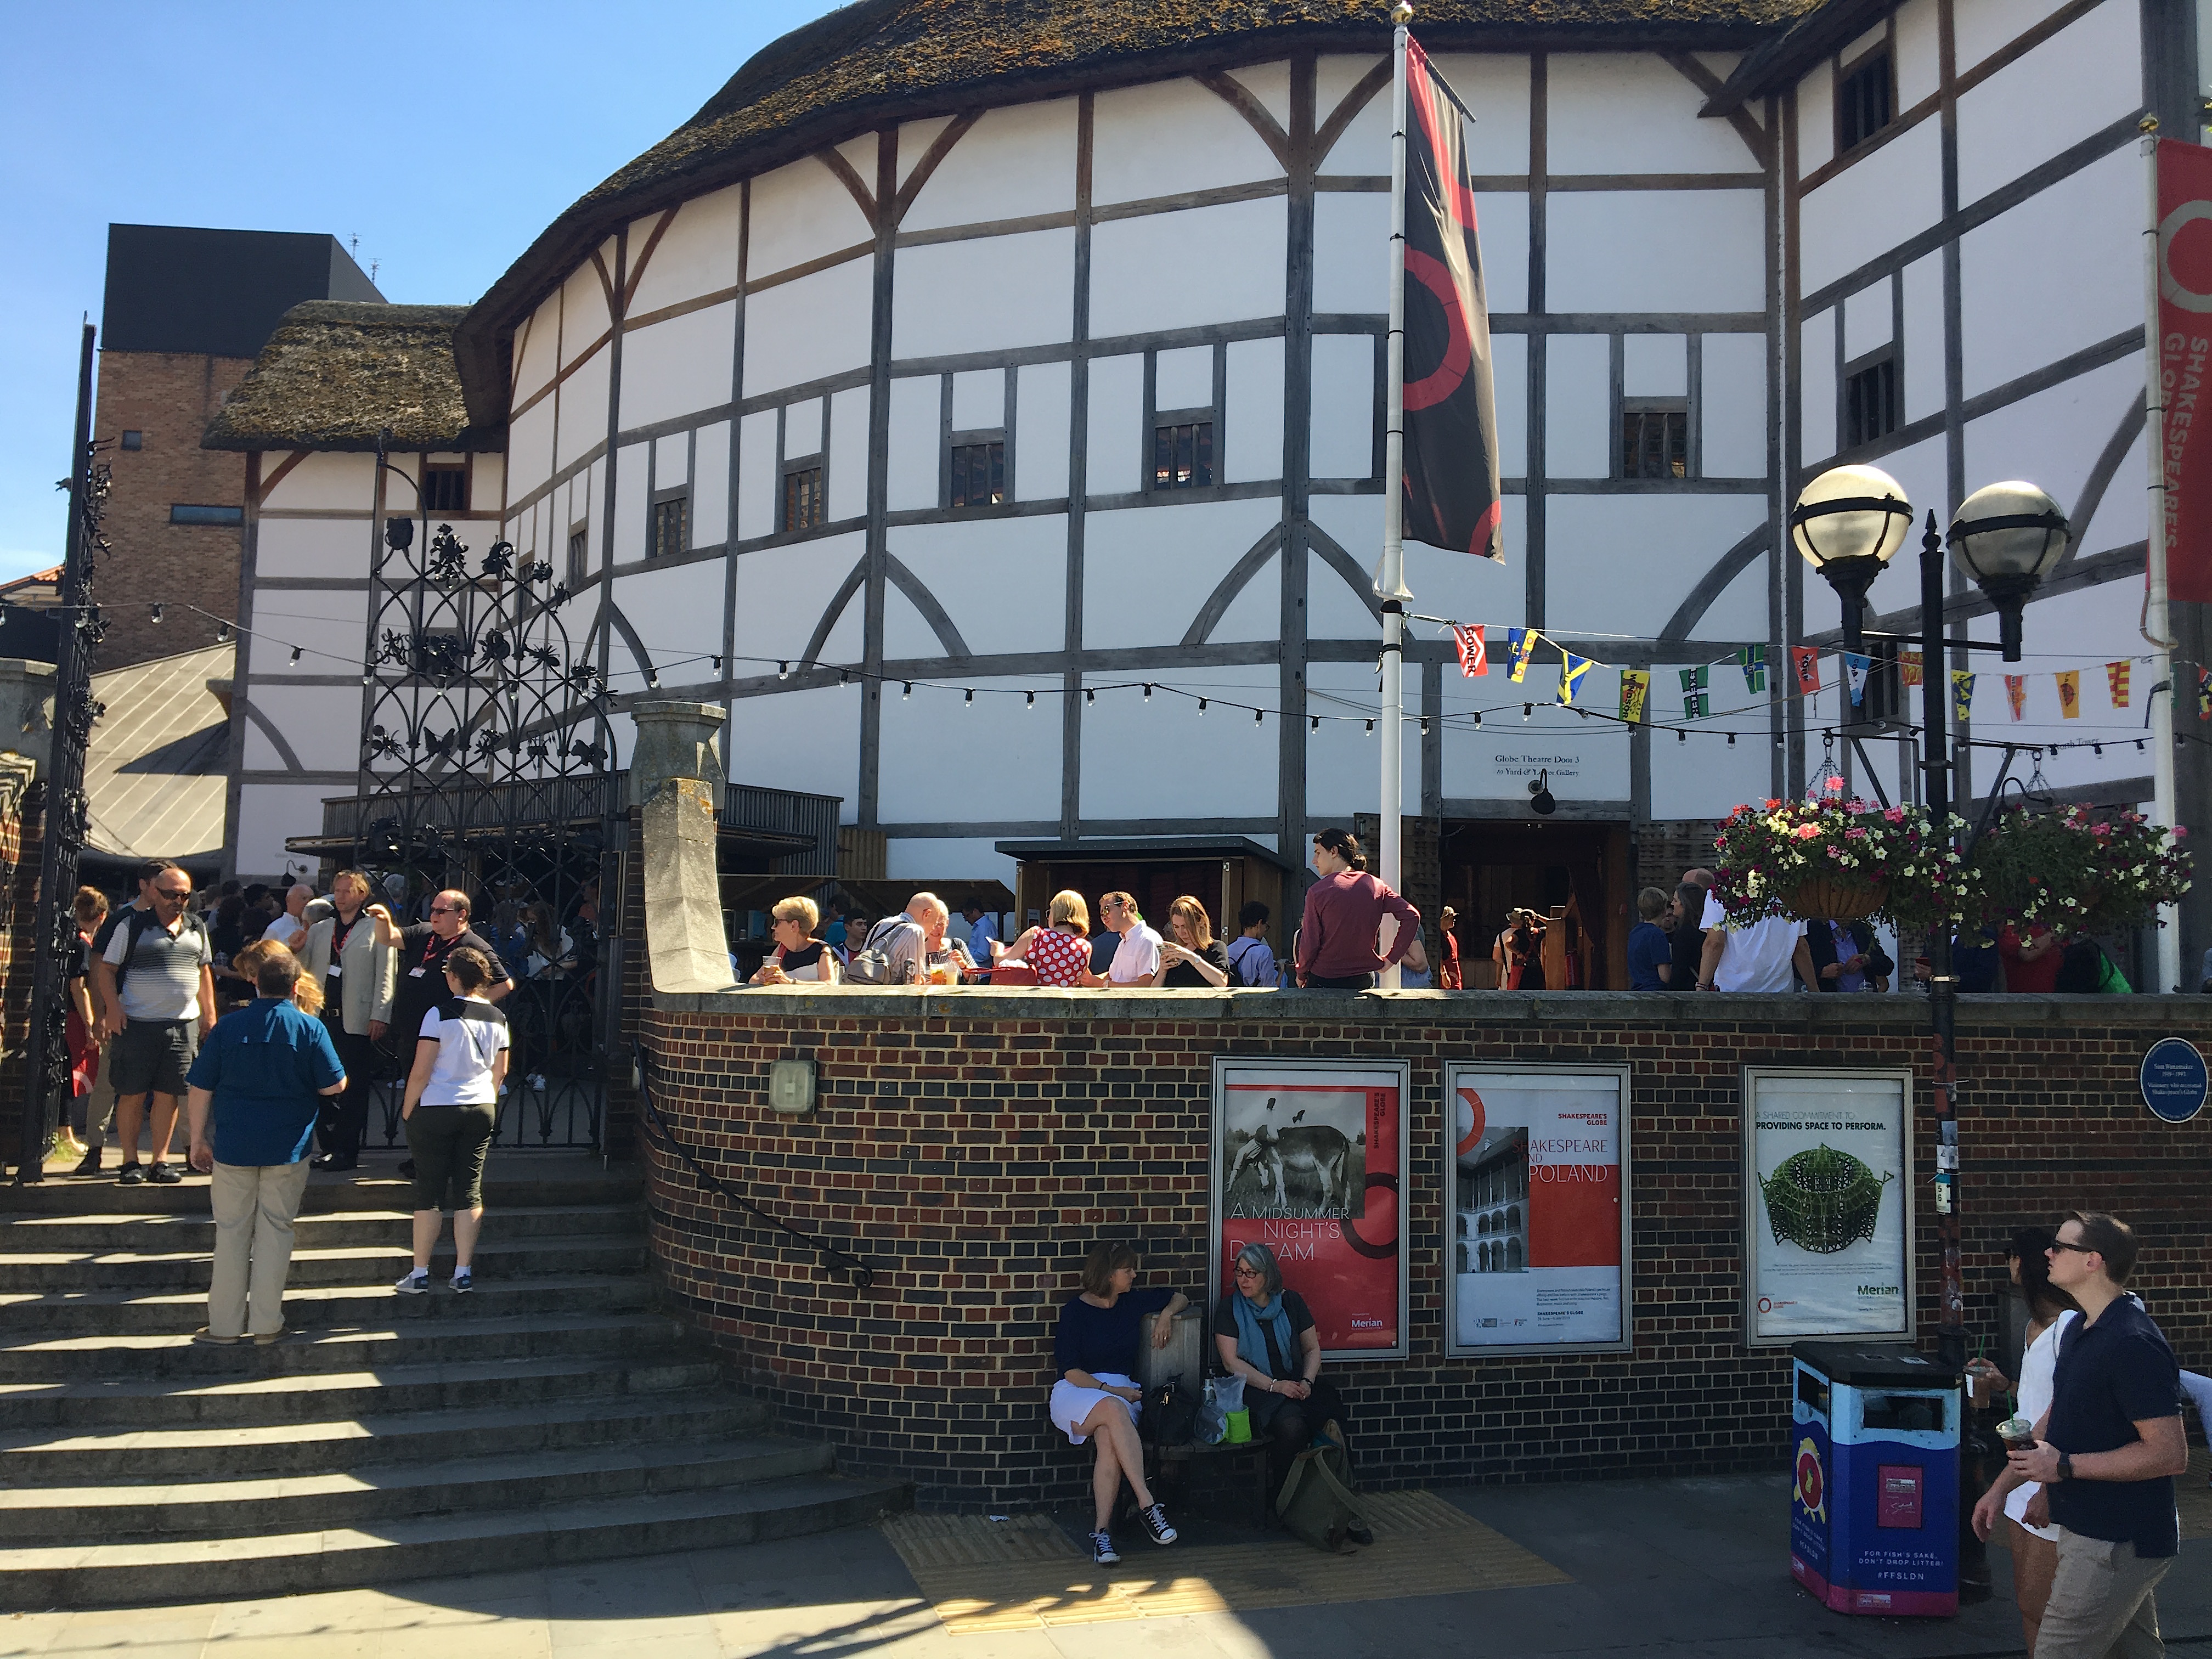 The Globe Theatre, Bankside